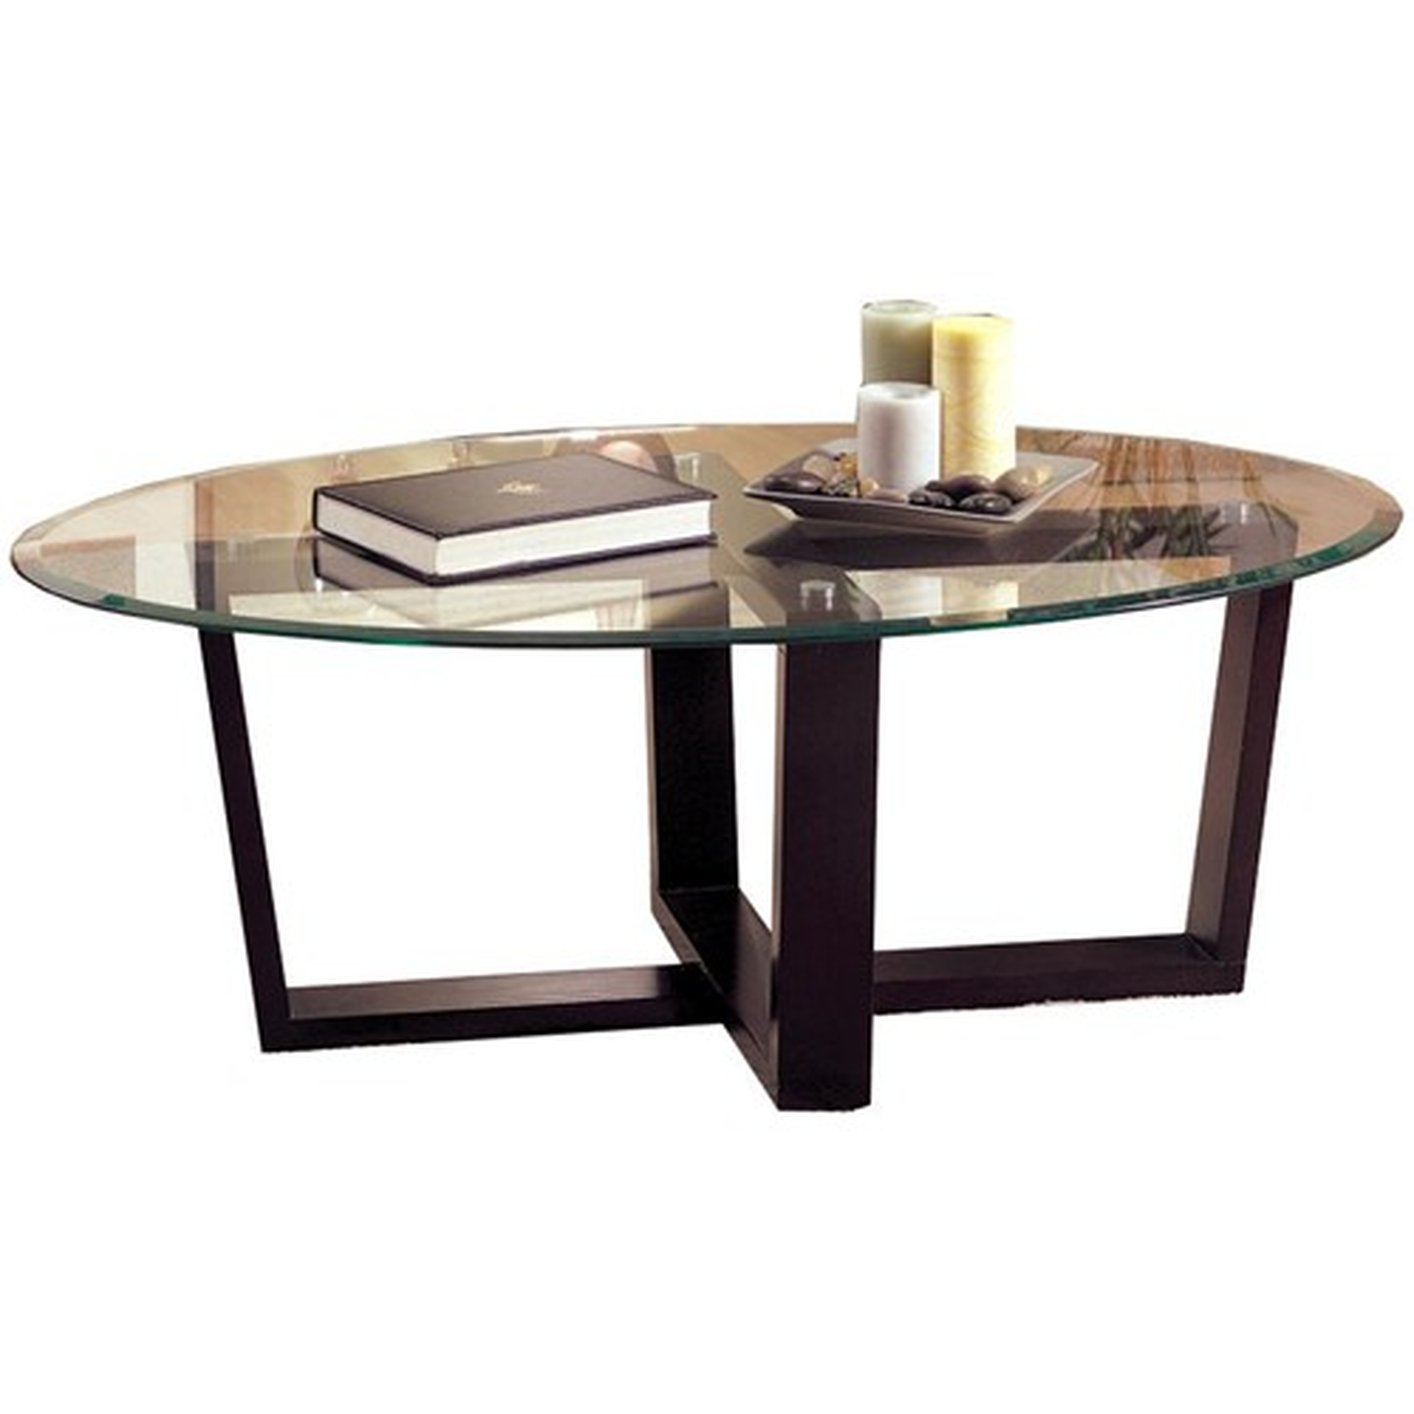 Alexis black glass coffee table set steal a sofa furniture outlet los angeles ca Black coffee table with glass